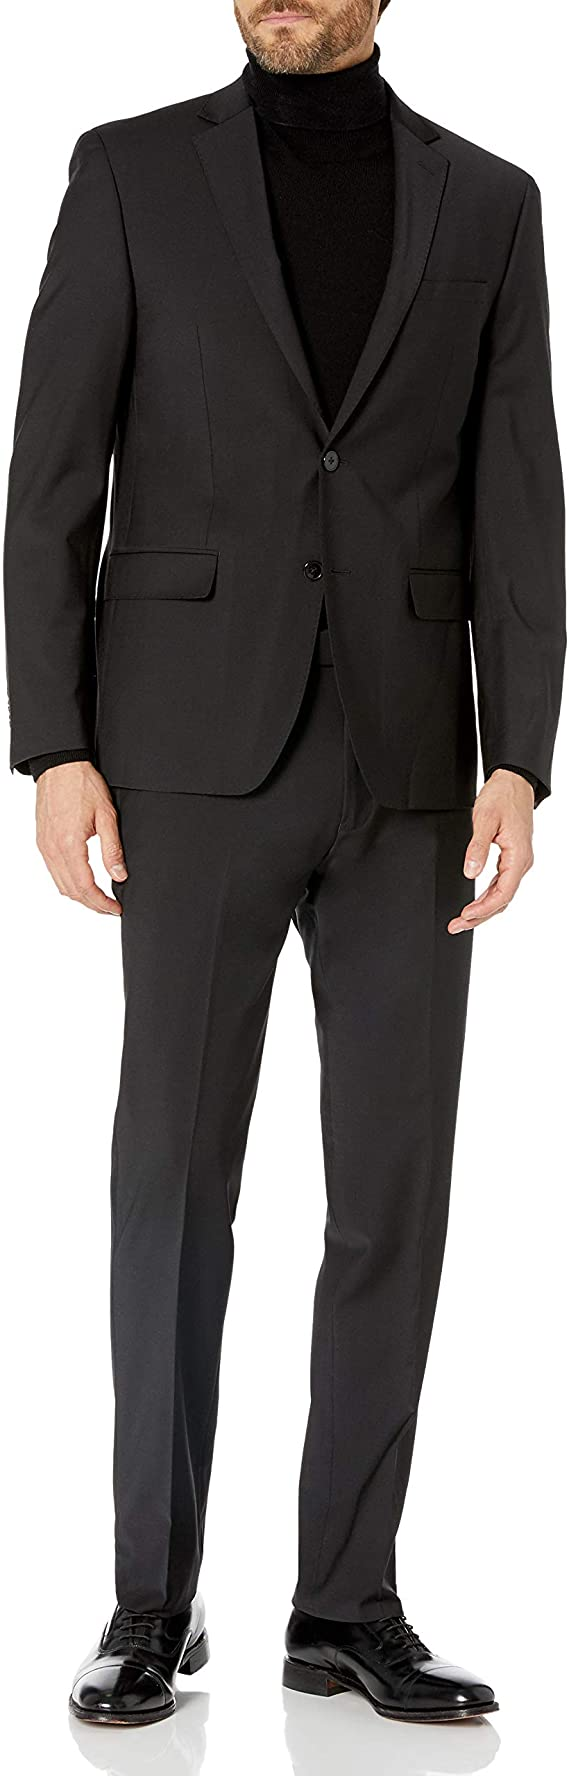 Calvin Klein Men's Extra Slim Infinite Stretch Black Suit MNRT2 5CW0023